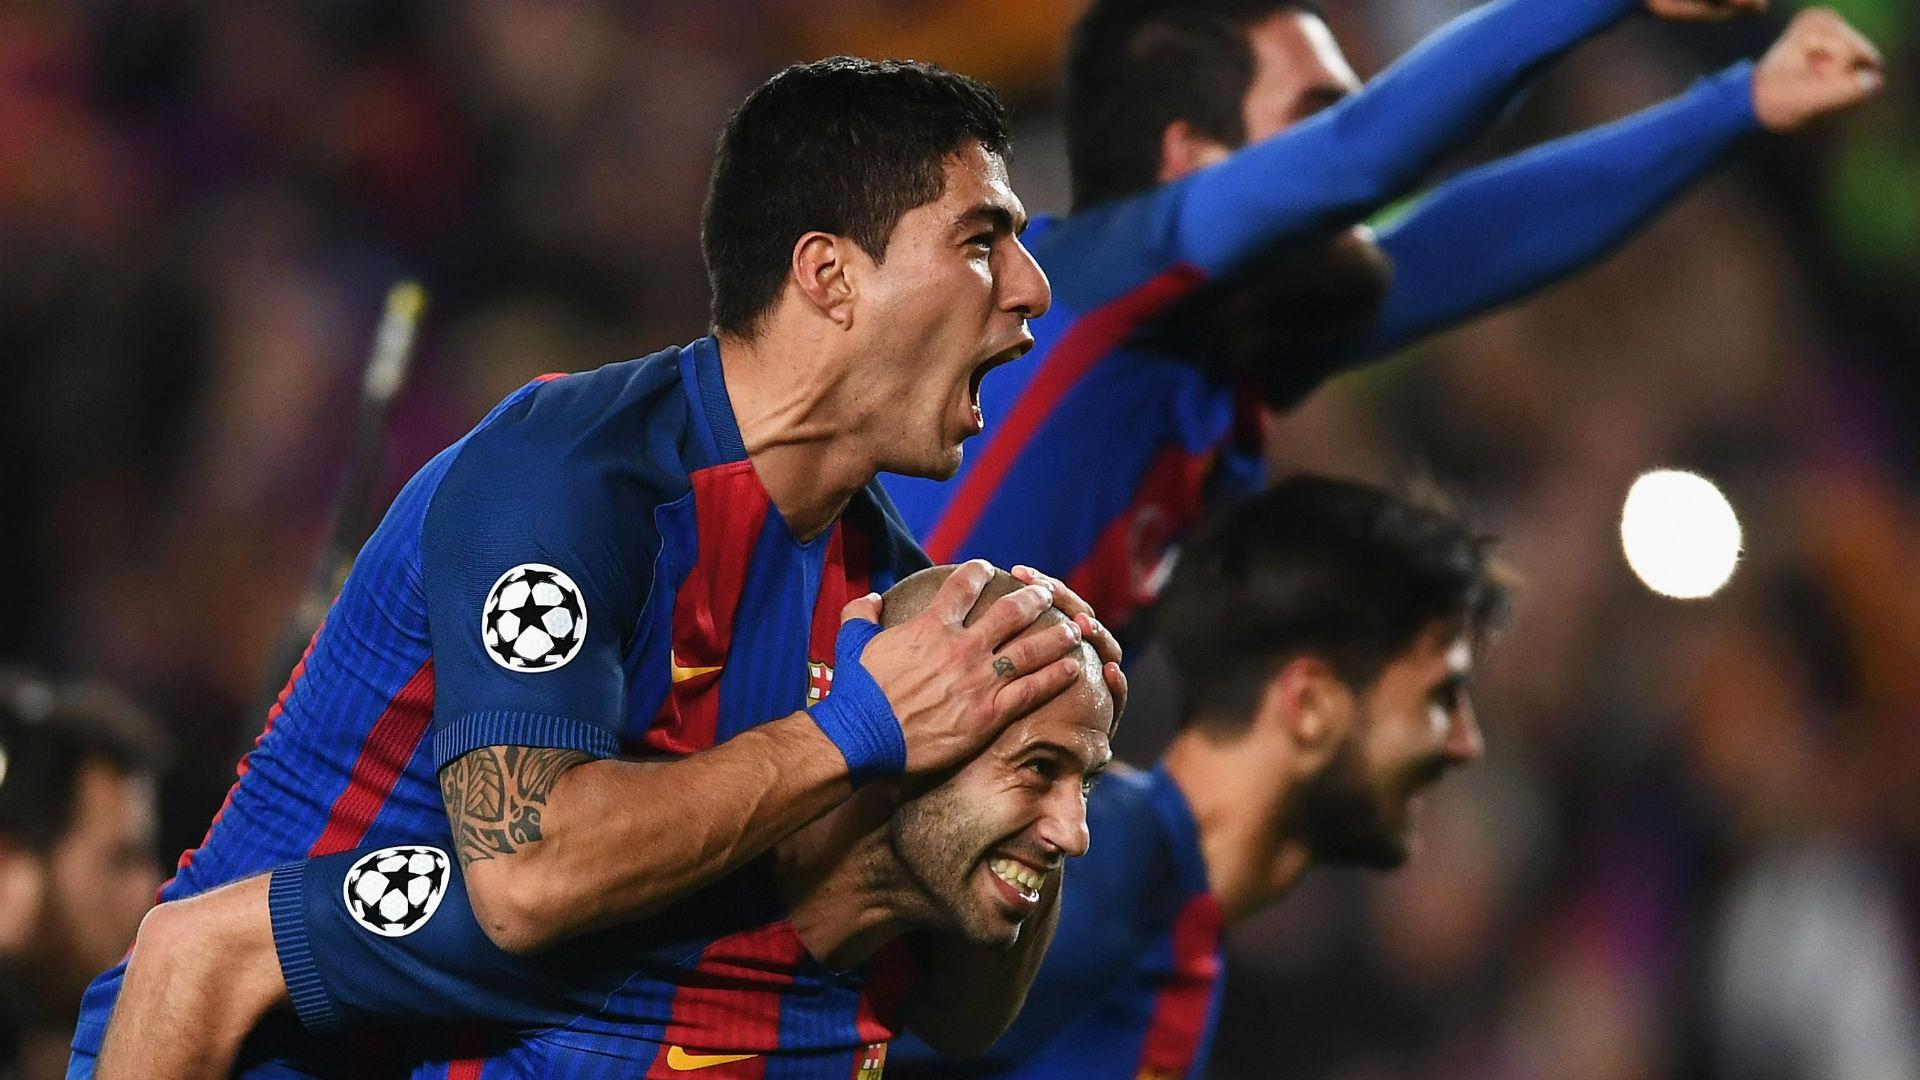 The comeback to end all comebacks - Barca's turnaround surpasses all in Champions League history